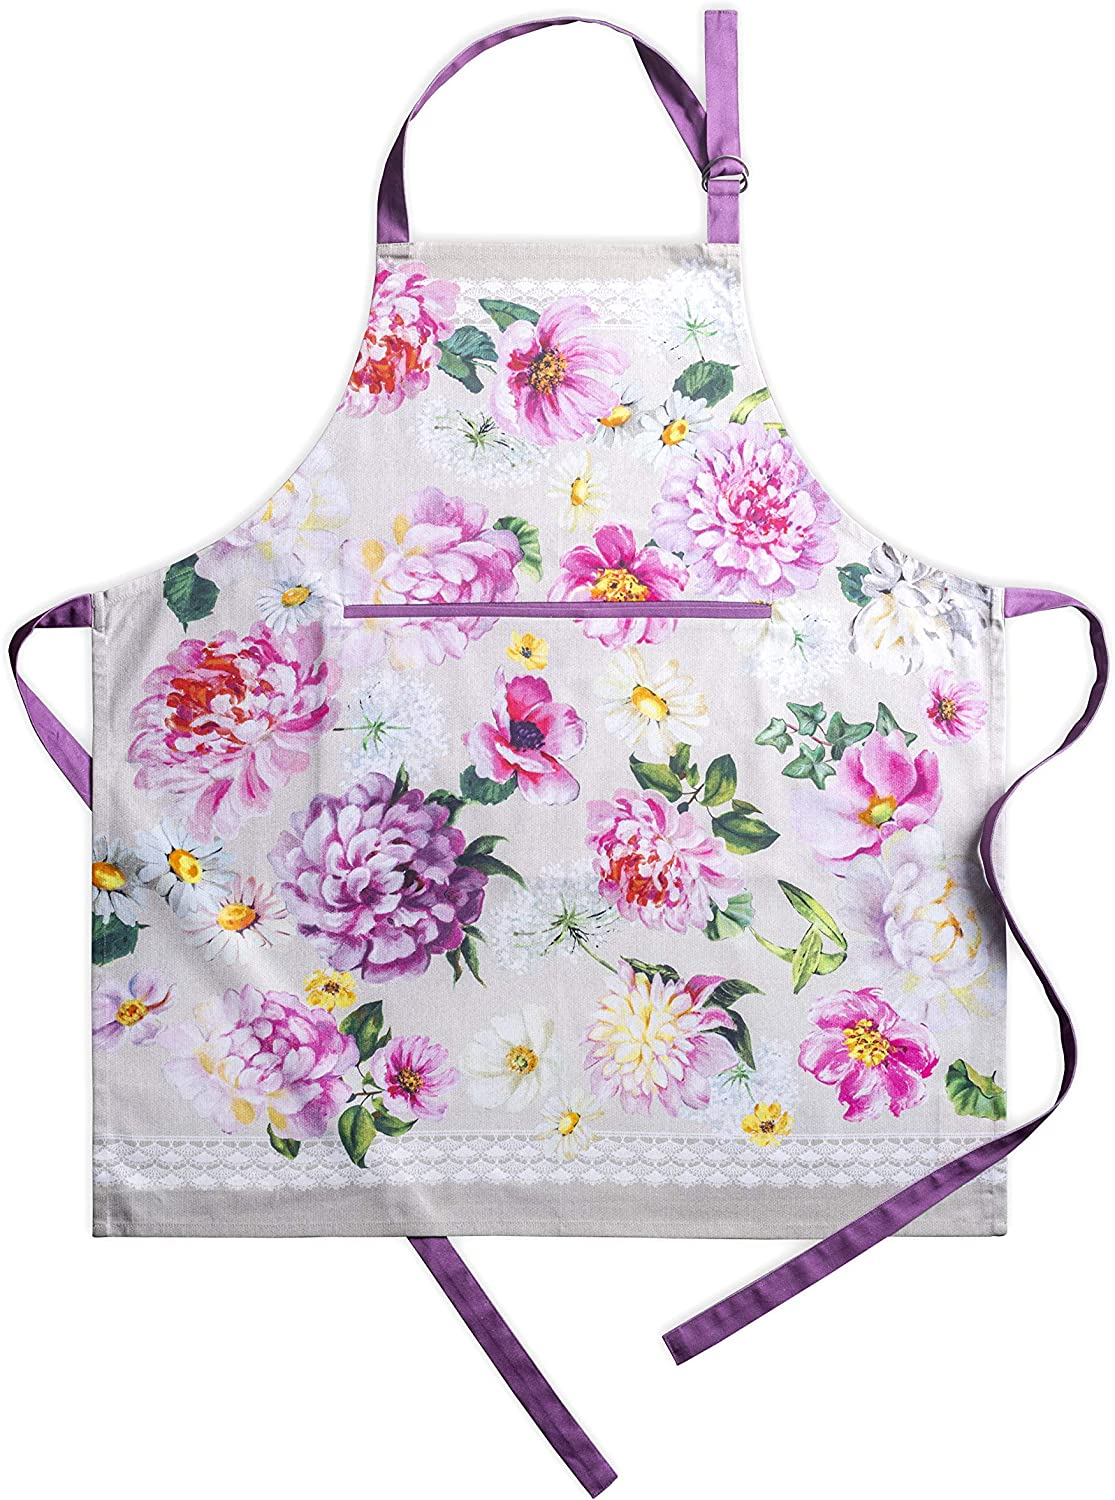 Maison d Hermine Rose Garden 100/% Cotton Apron with an Adjustable Neck /& Visible Center Pocket 27.50 Inch by 31.50 Inch Aspero